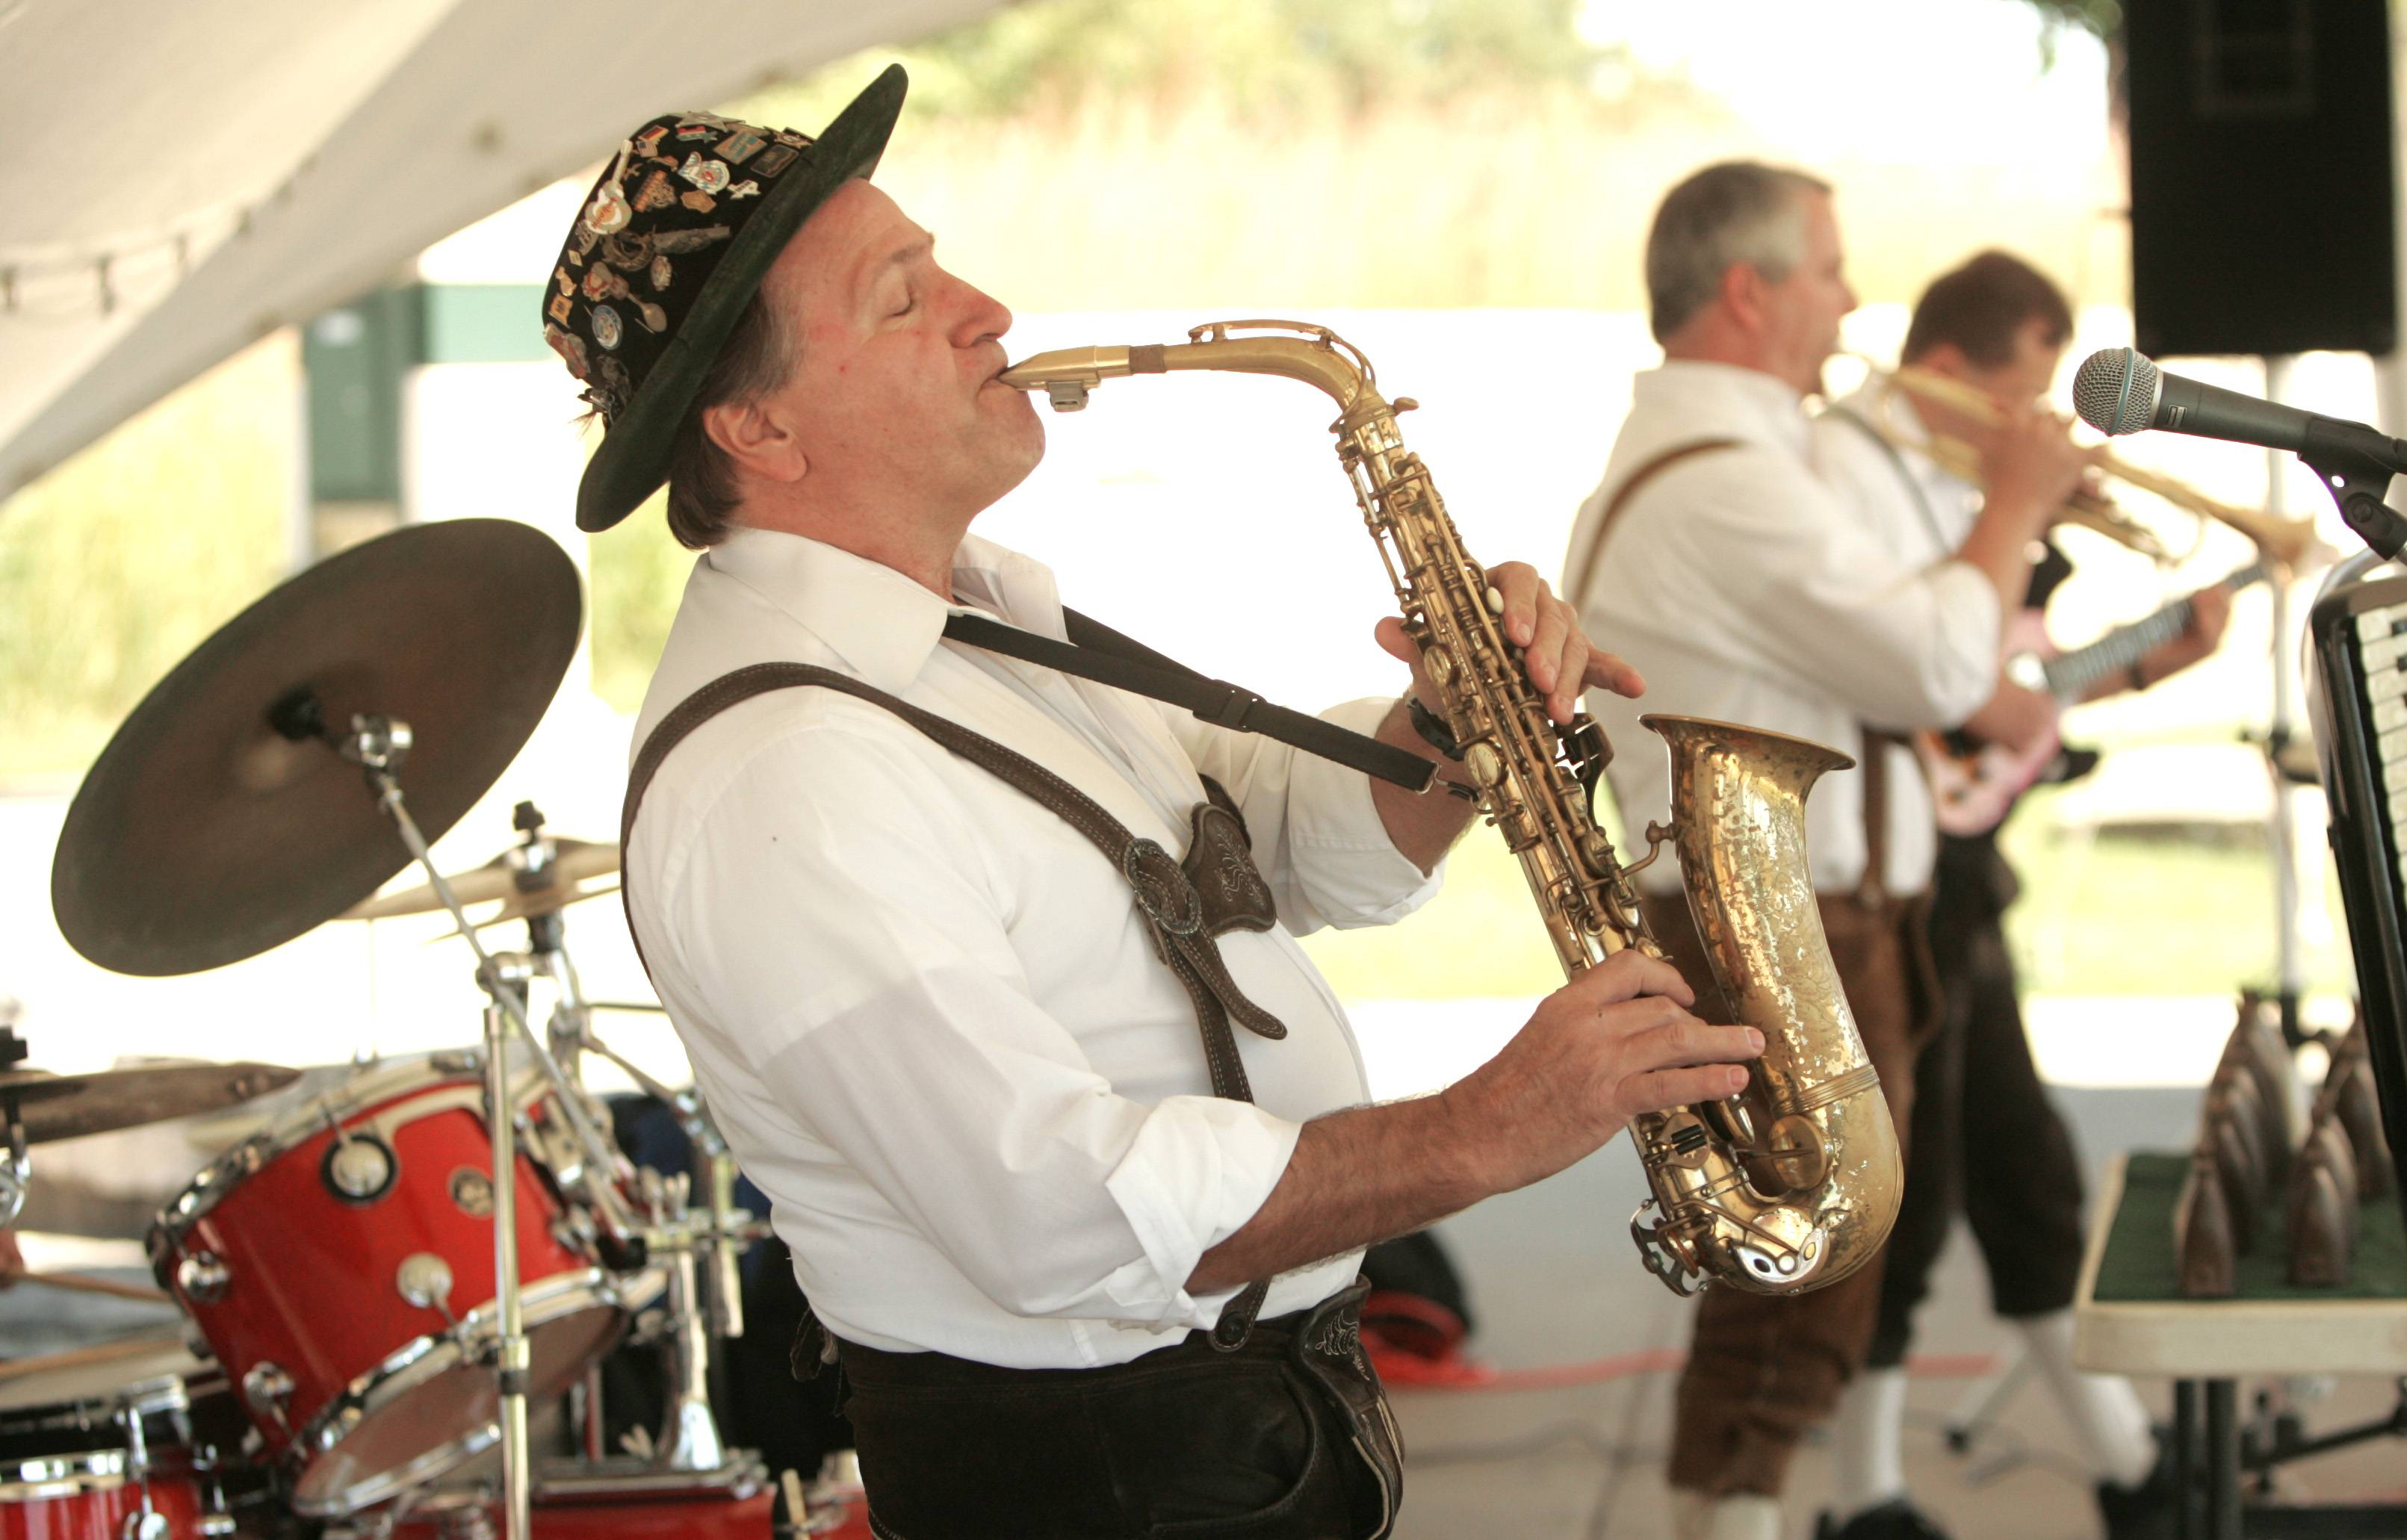 Johnny Wagner plays the saxophone and leads the Johnny Wagner Band during a previous Platzkonzert Germanfest at the Village Green in Hoffman Estates.